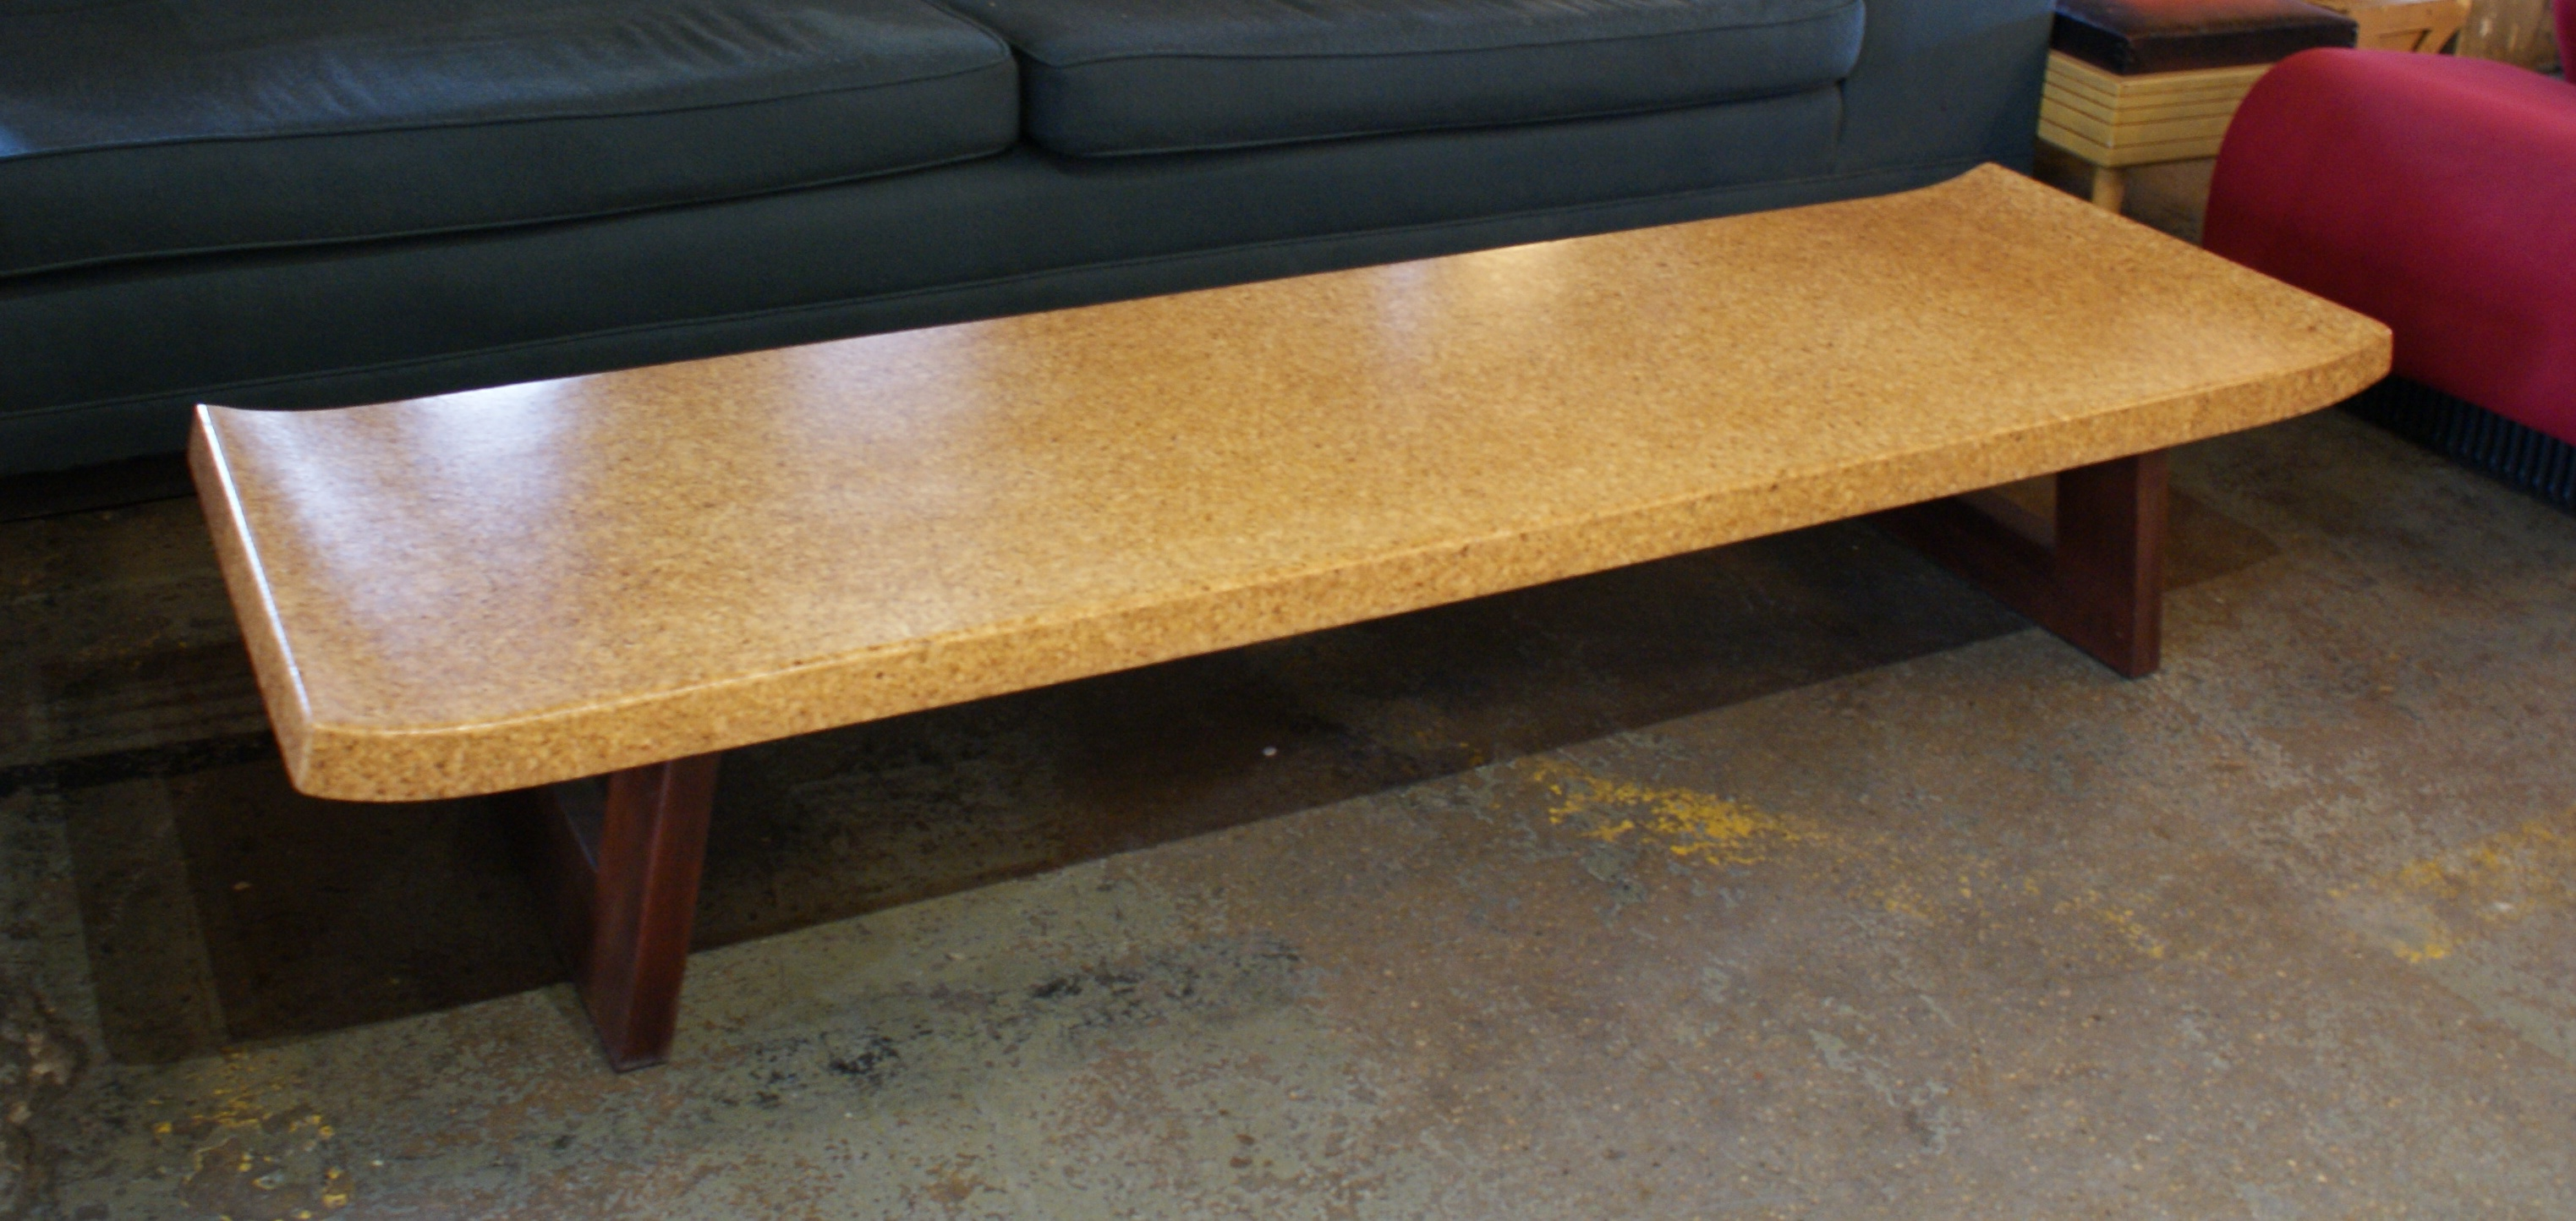 Refinished Cork Top Coffee Table by Paul Frankl – Salvage e